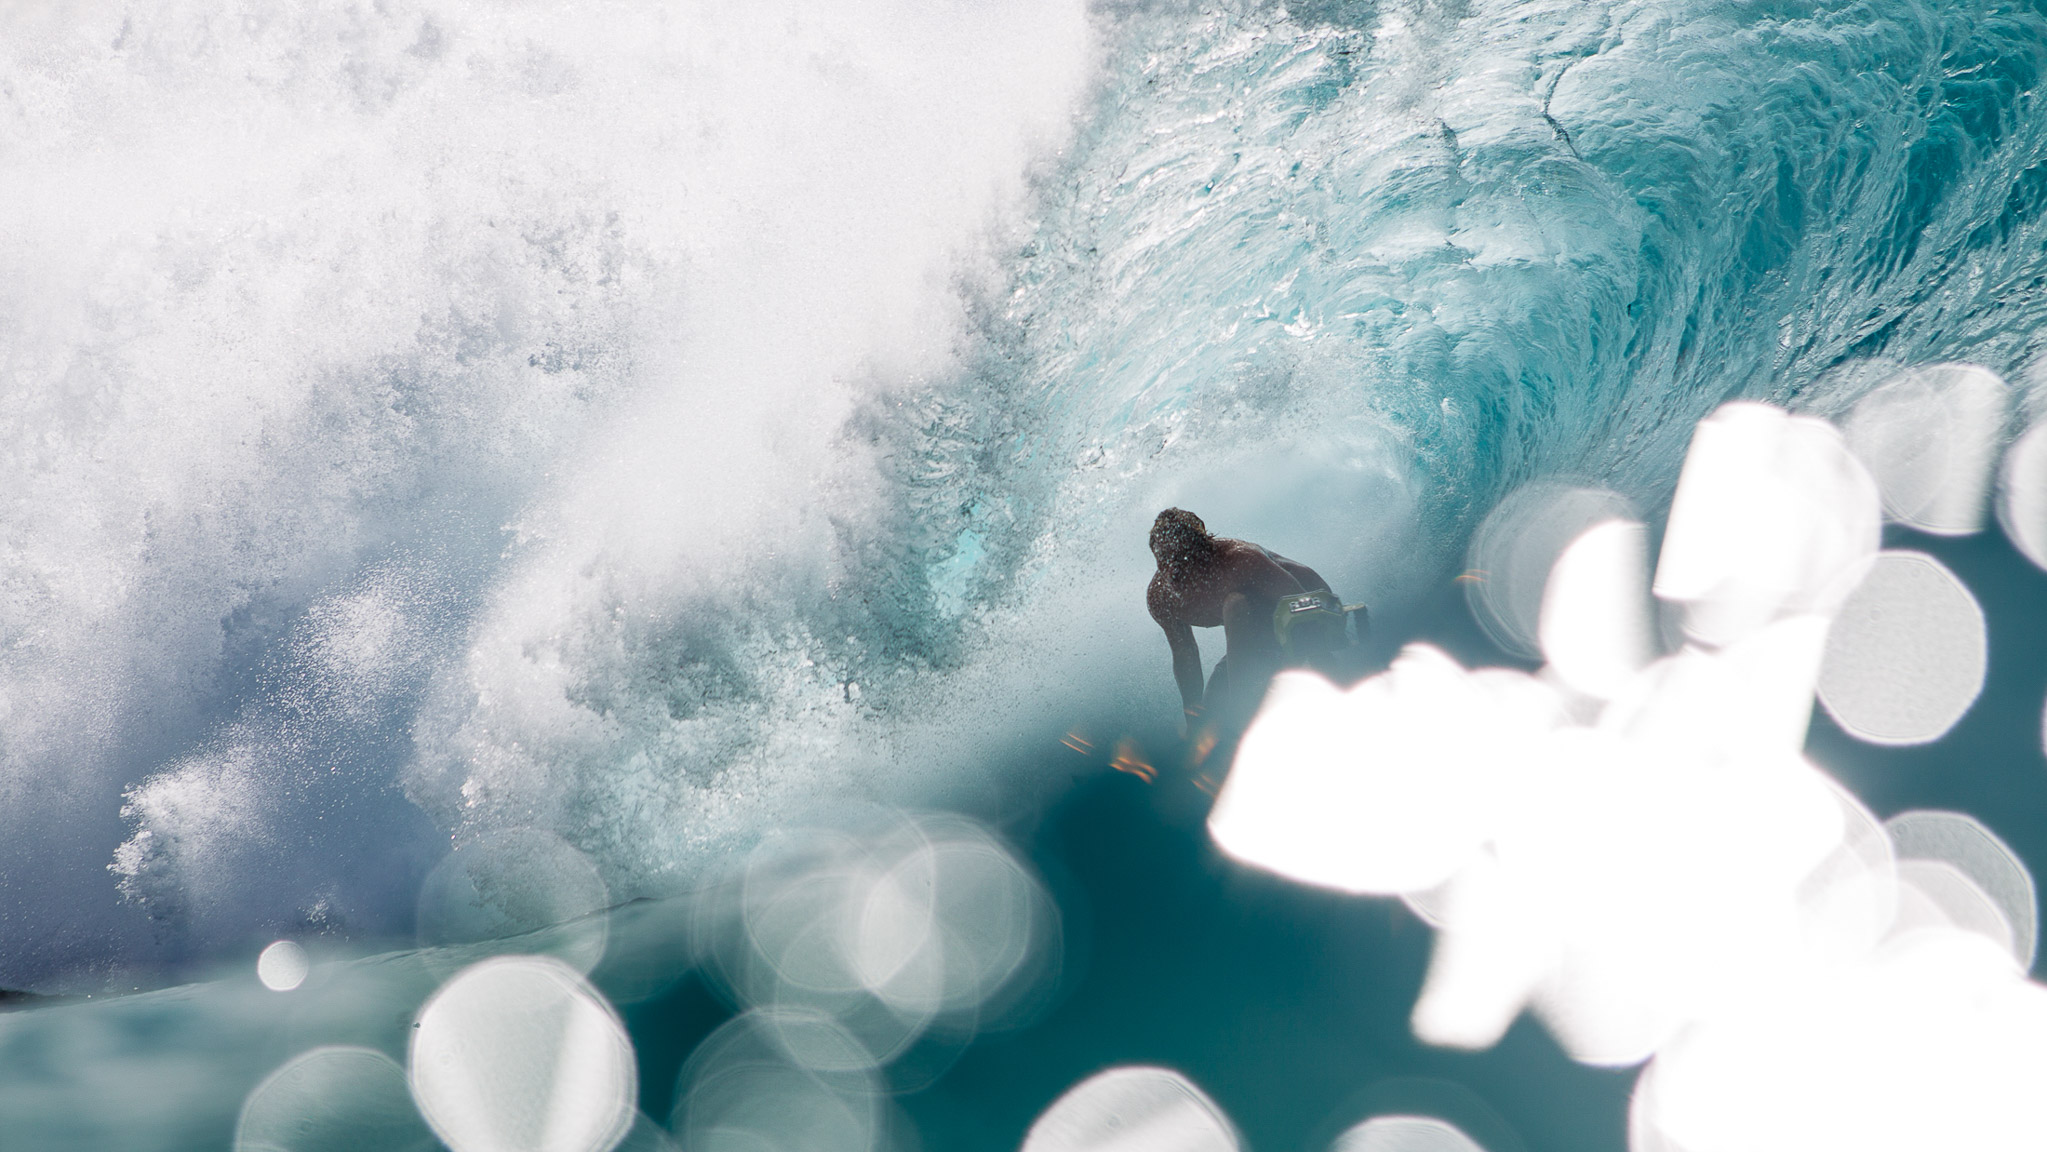 Chris Ward, Pipeline, Hawaii